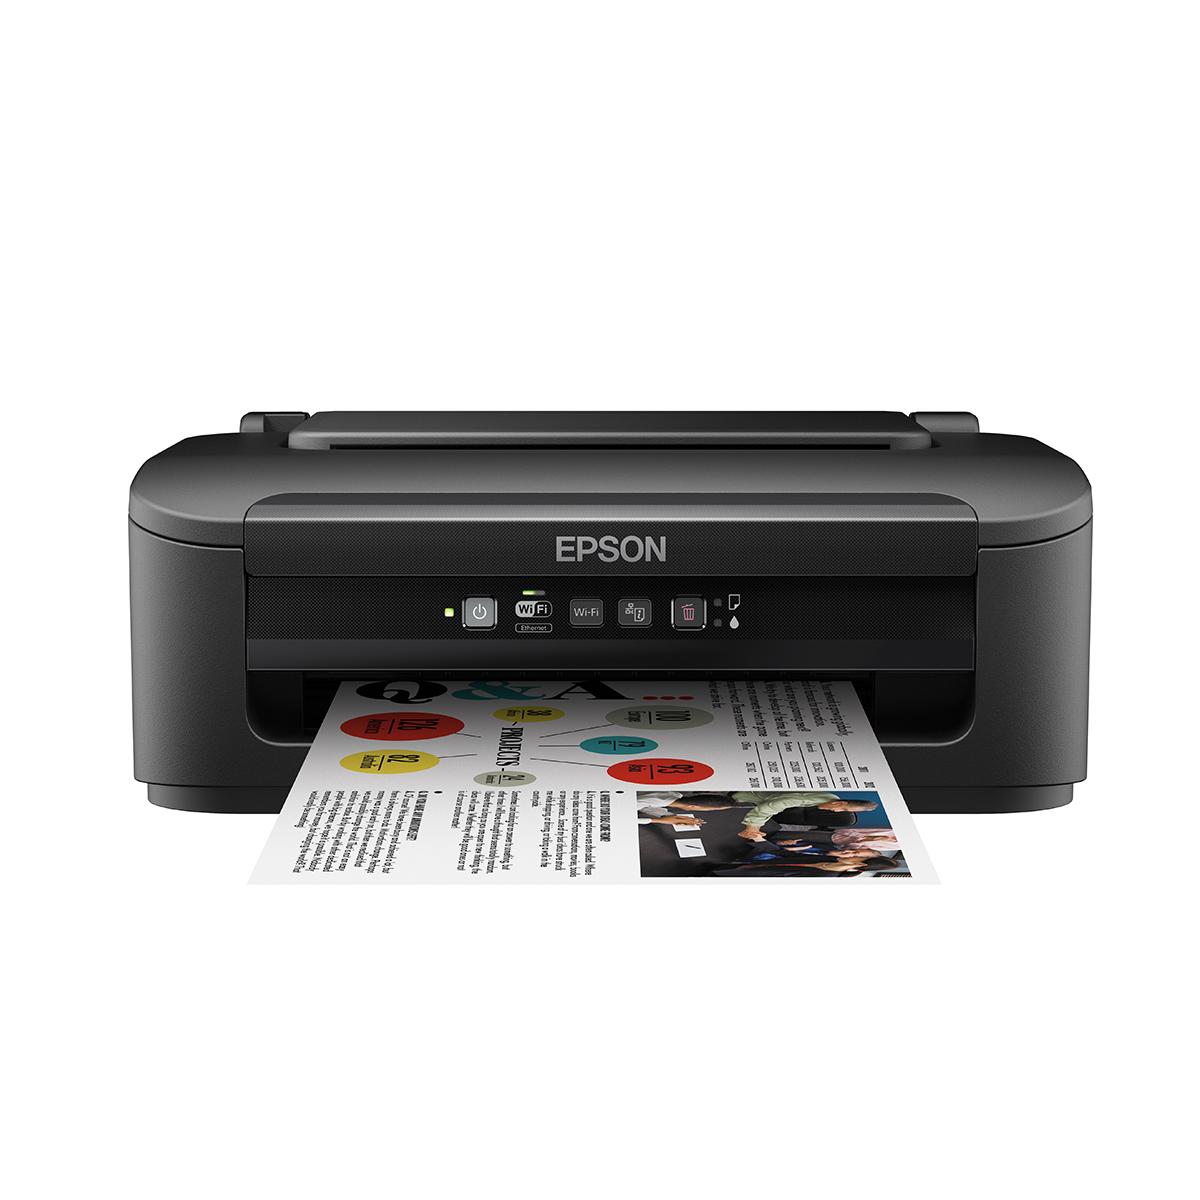 Epson Workforce WF-2010W A4 Colour Inkjet Printer